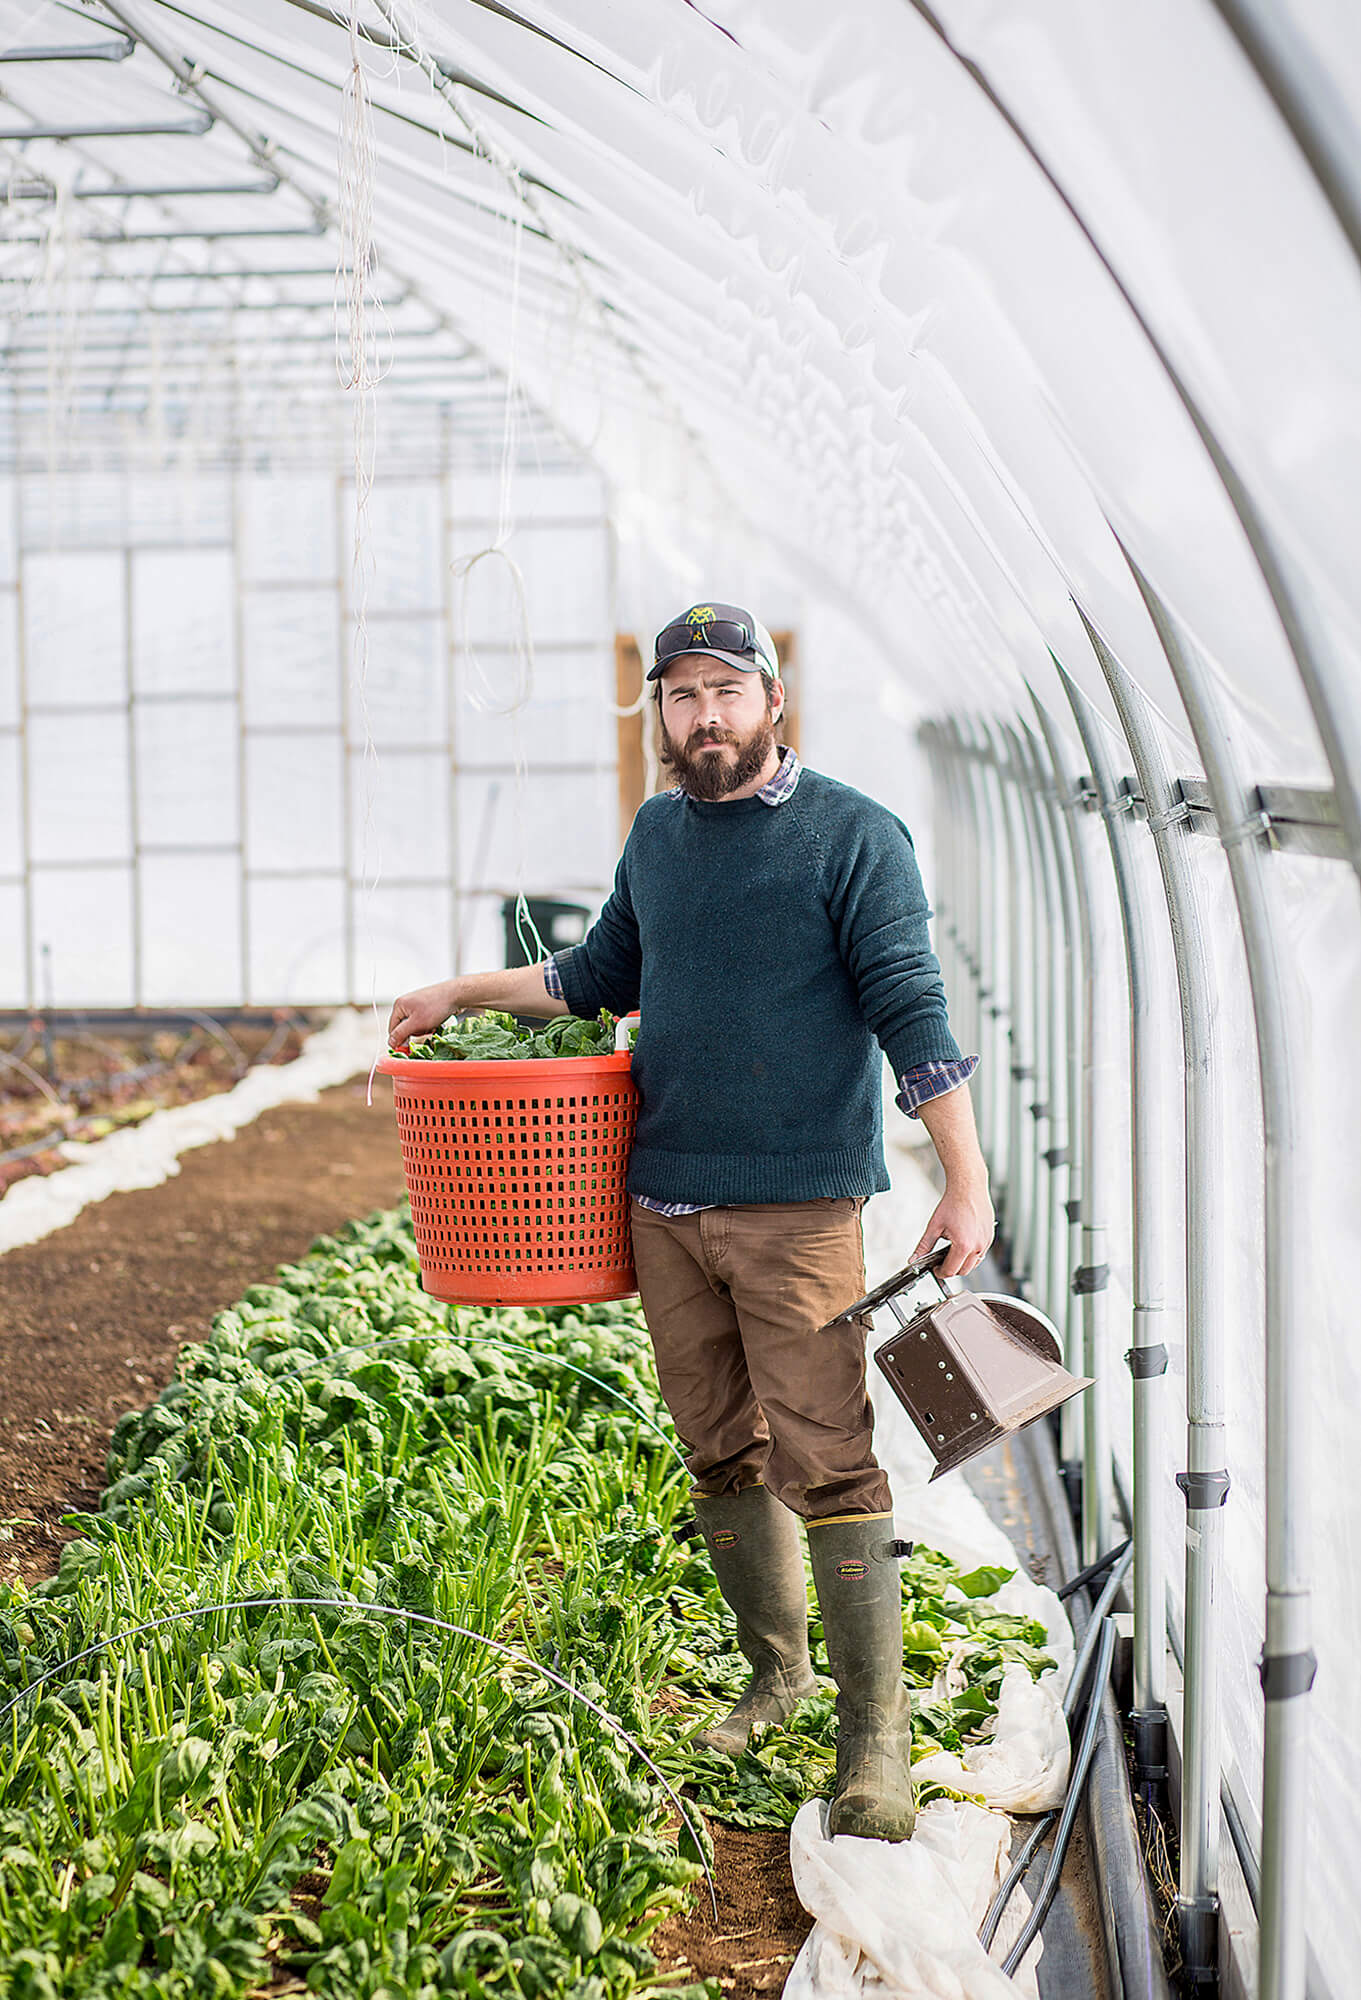 Portrait photography of Ben Whalen, co-owner of Bumbleroot Organic Farm, in a high tunnel after harvesting spinach on the Windham farm